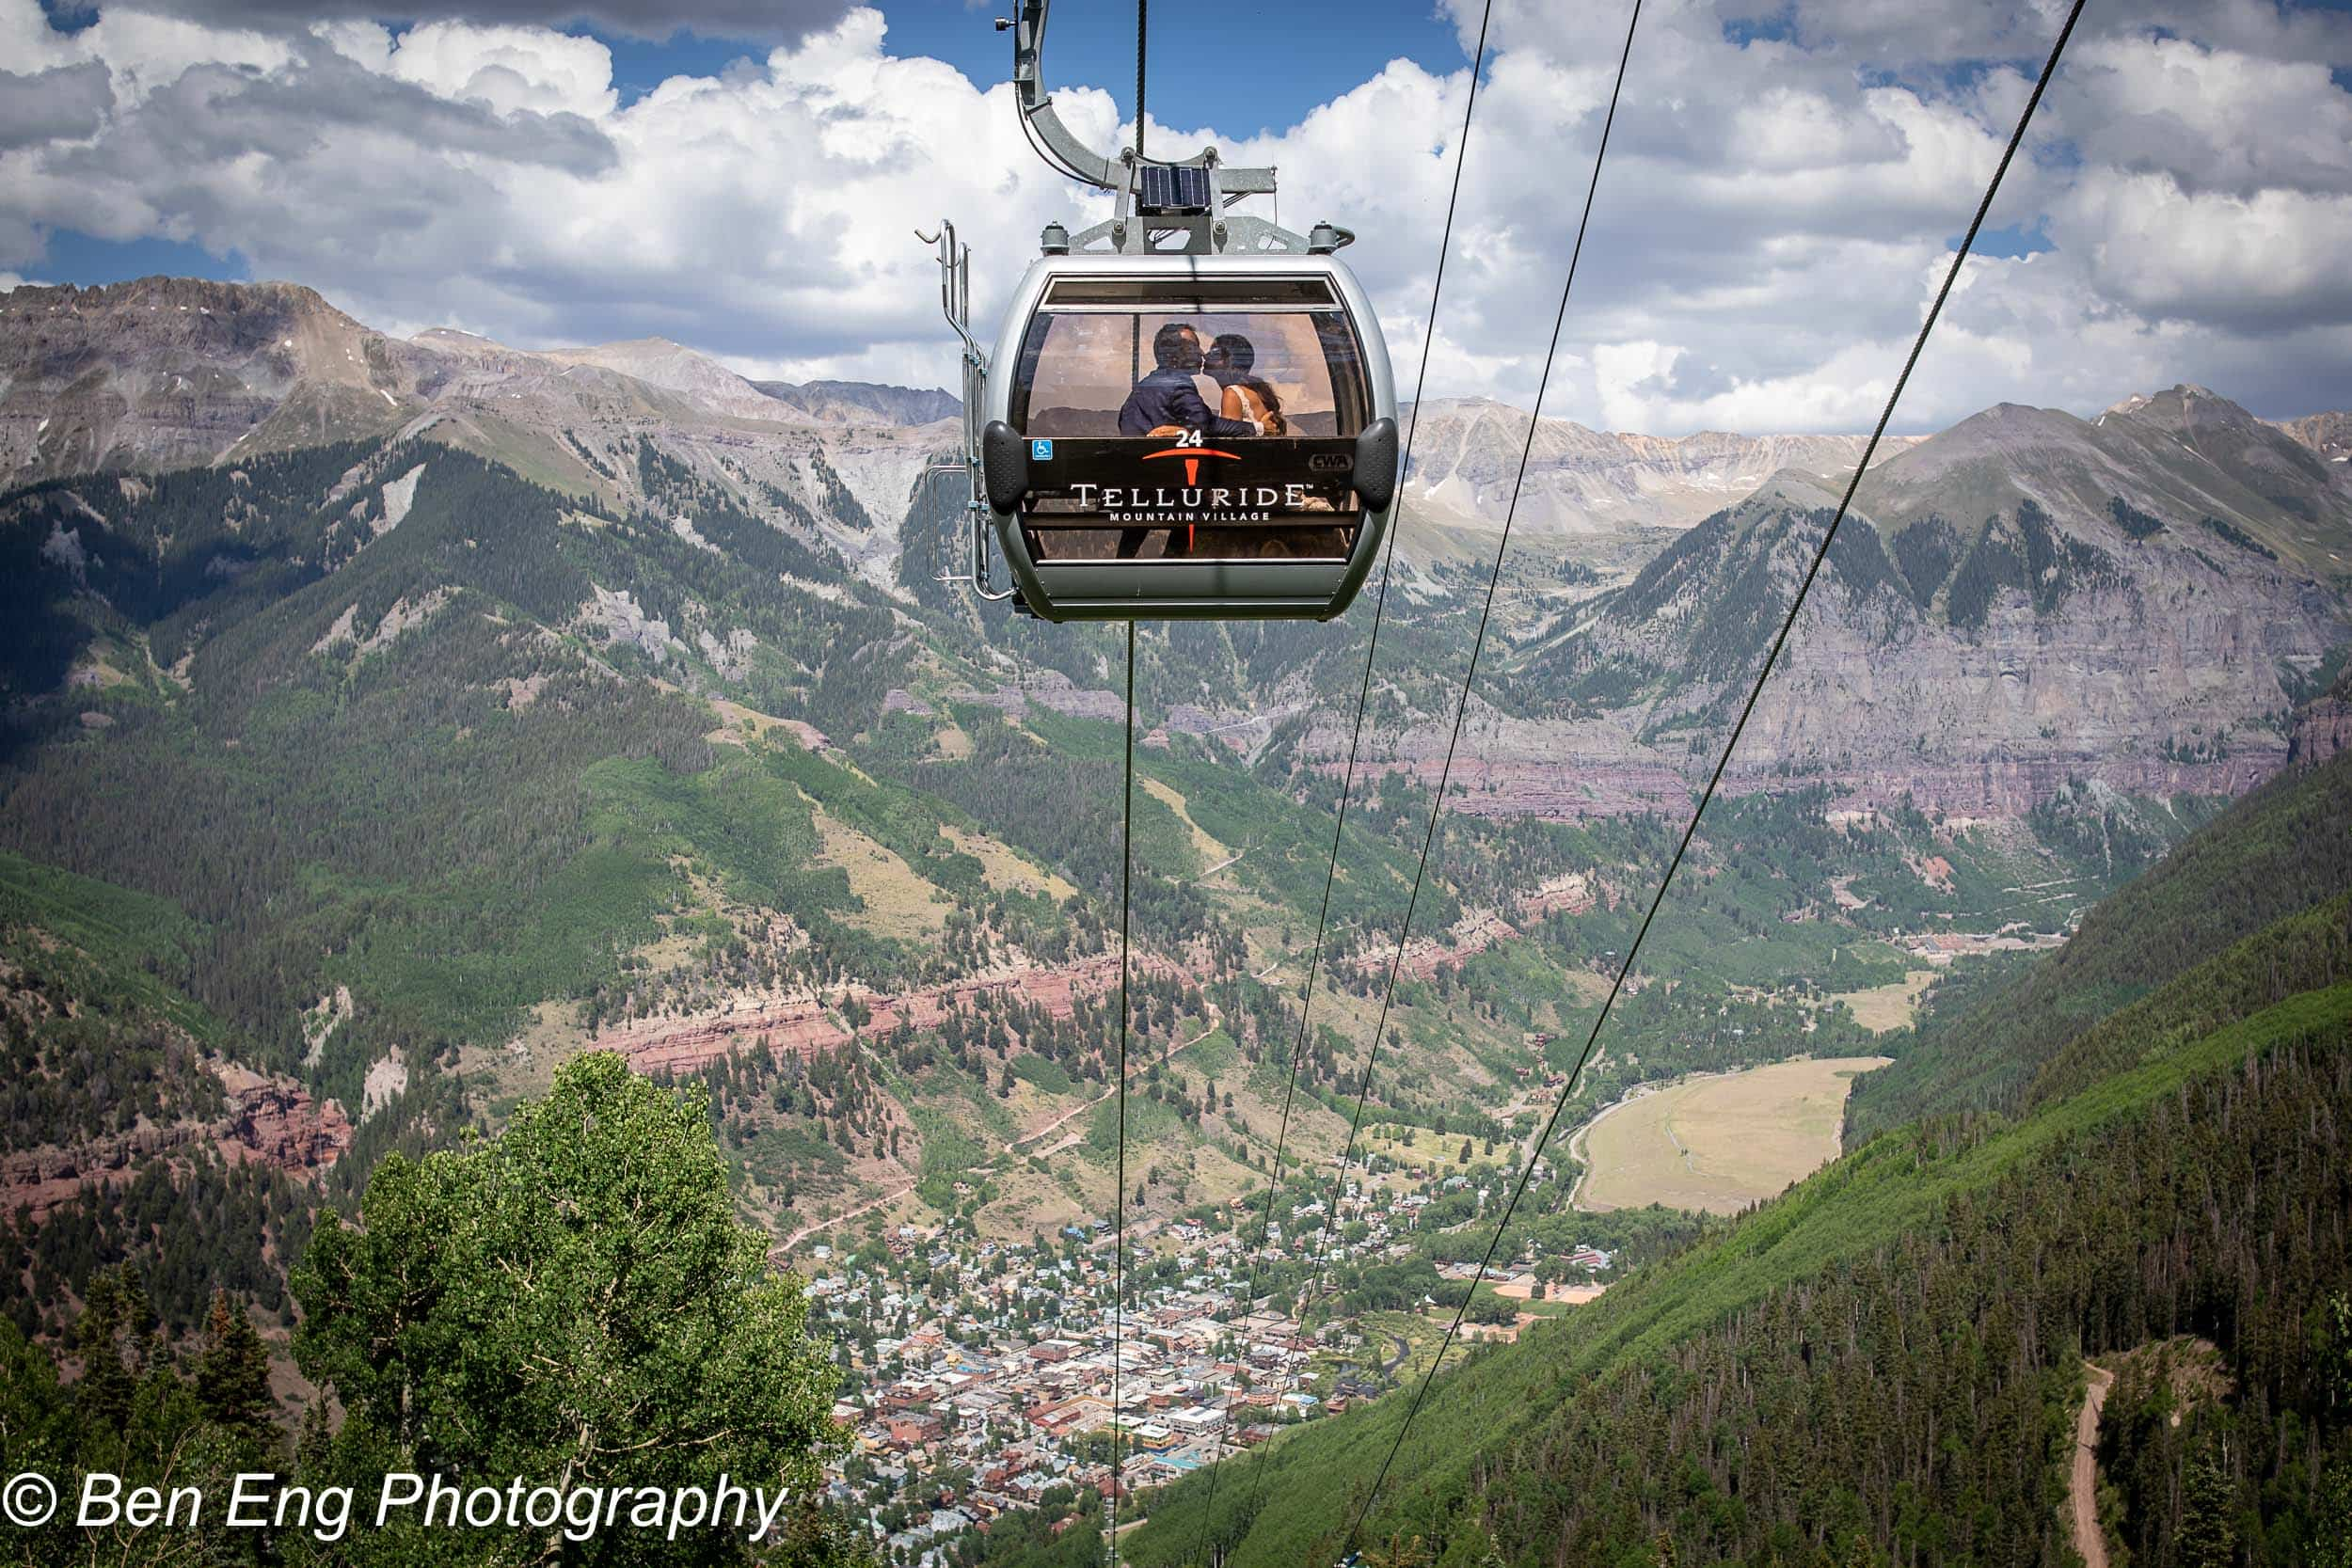 Bride and groom in the gondola above Telluride